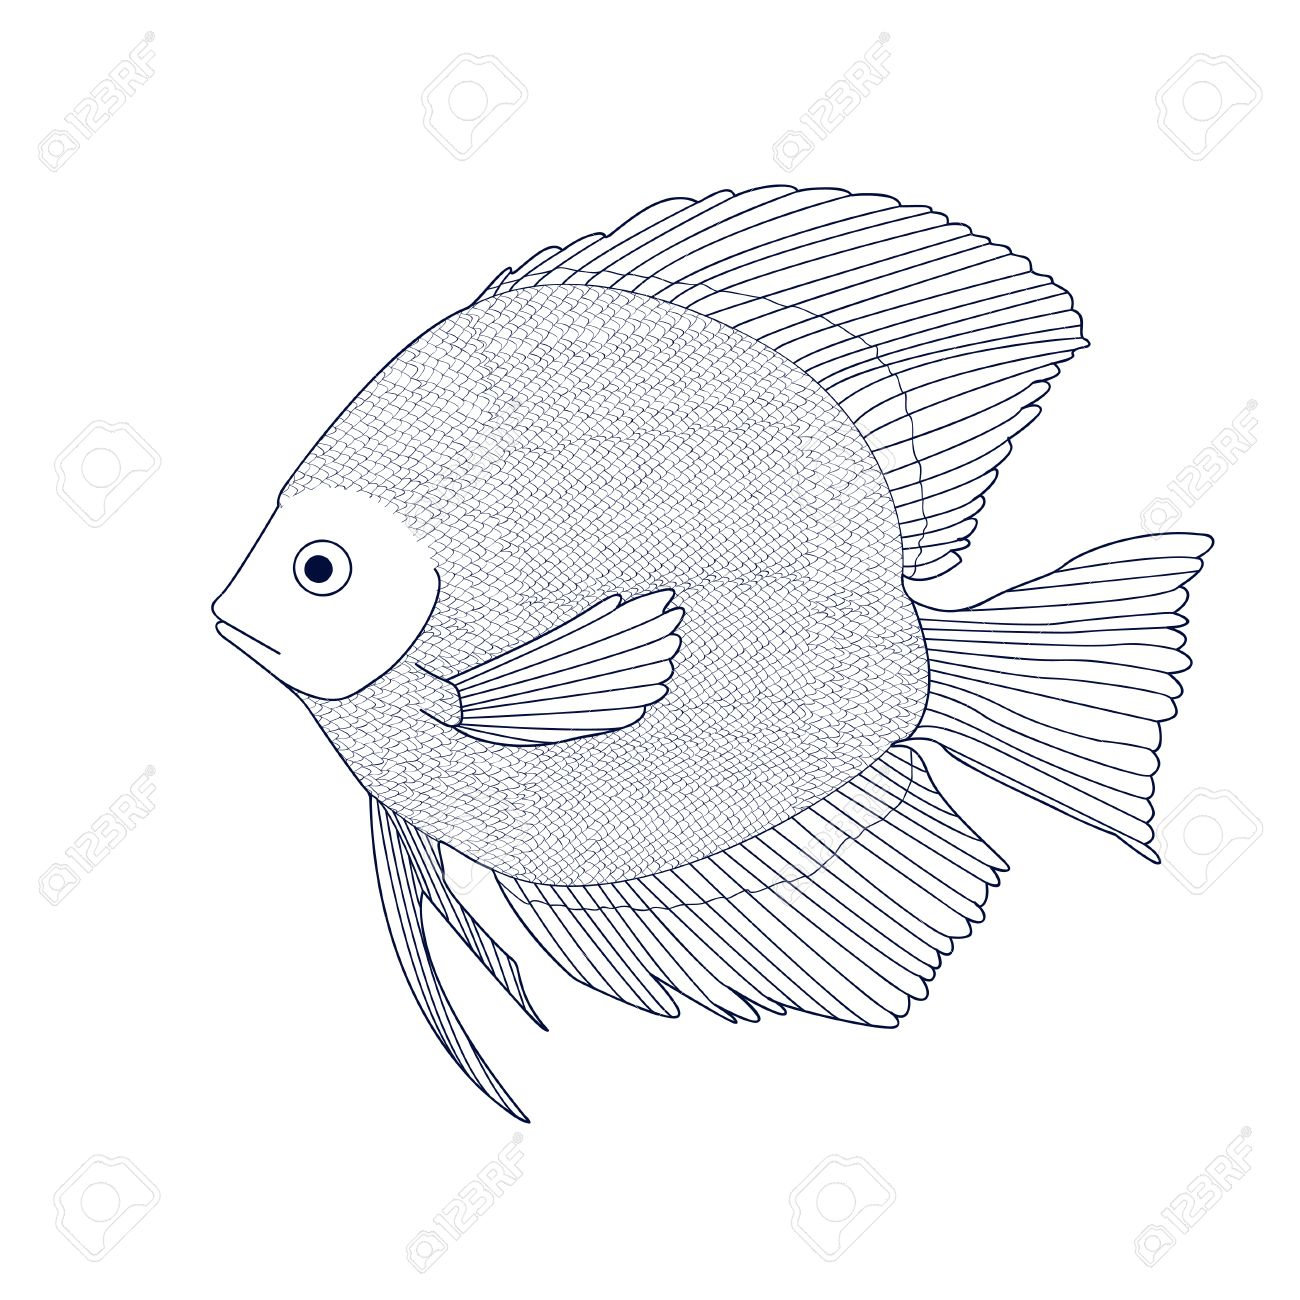 Discus Sketch Of Aquarium Fish Vector Royalty Free Cliparts